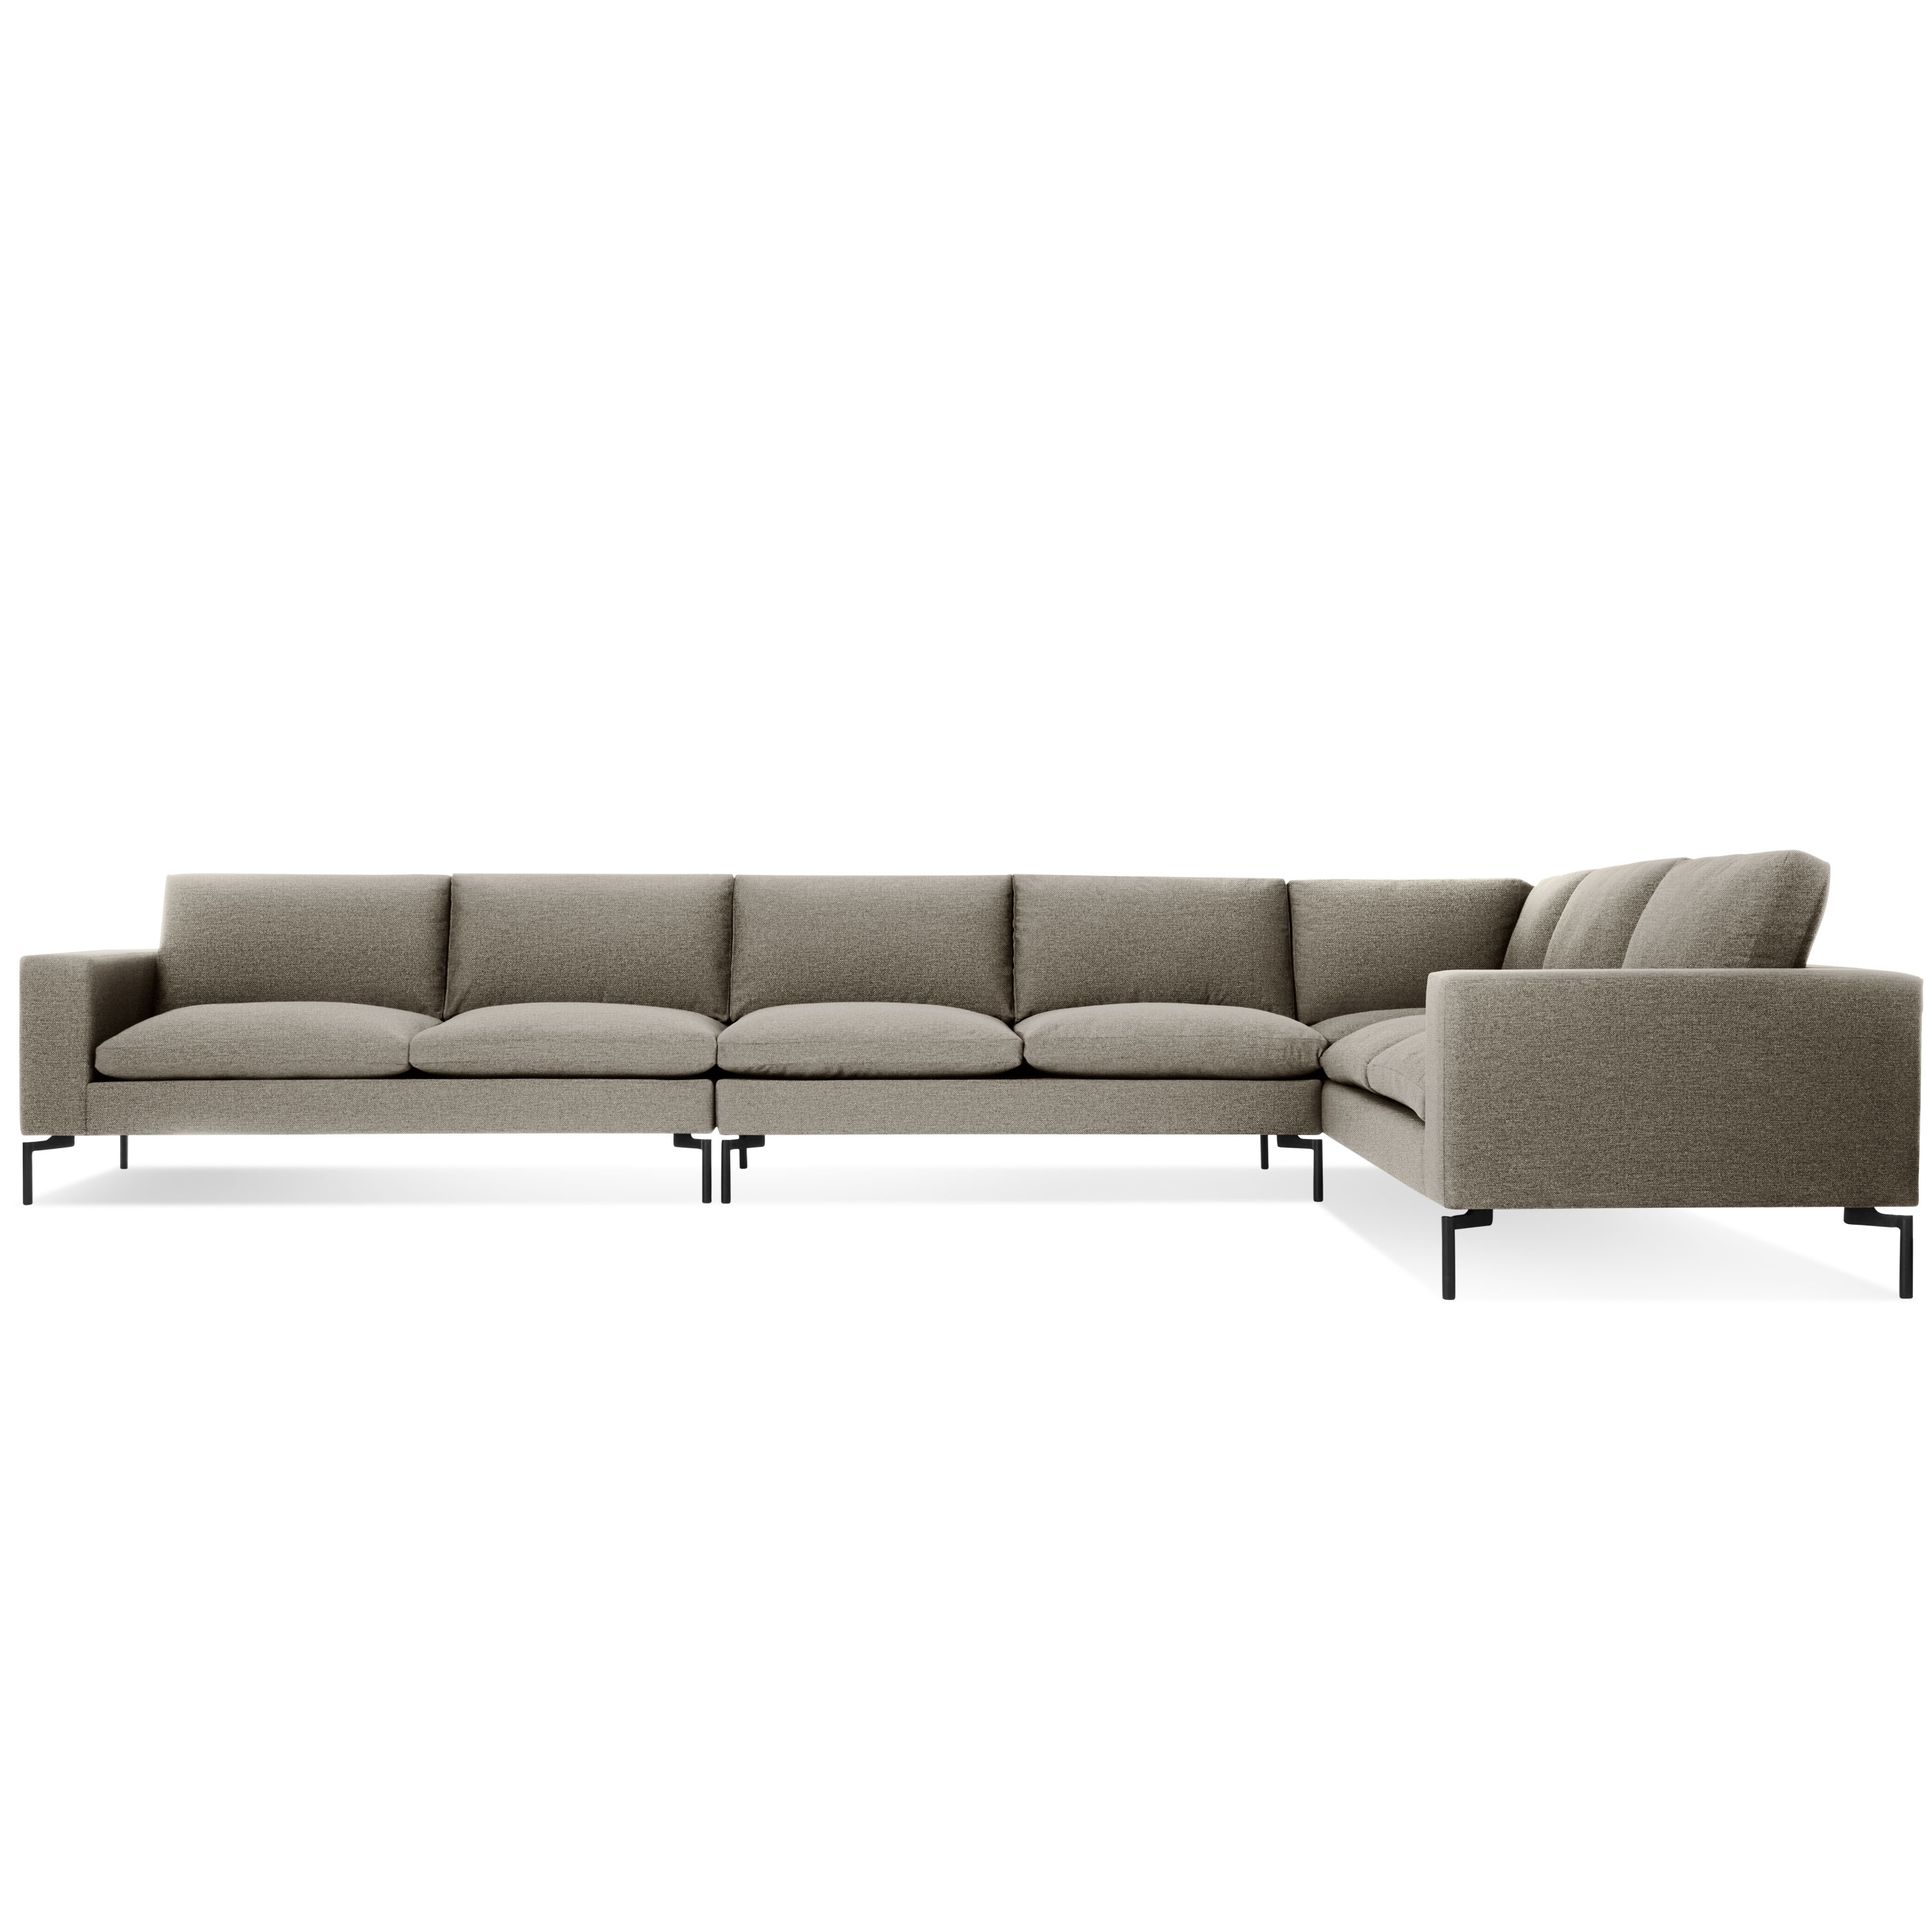 Newfoundland Sectional Sofas Intended For Most Recent New Standard Large Sectional Sofa – Large Sofas (View 11 of 15)